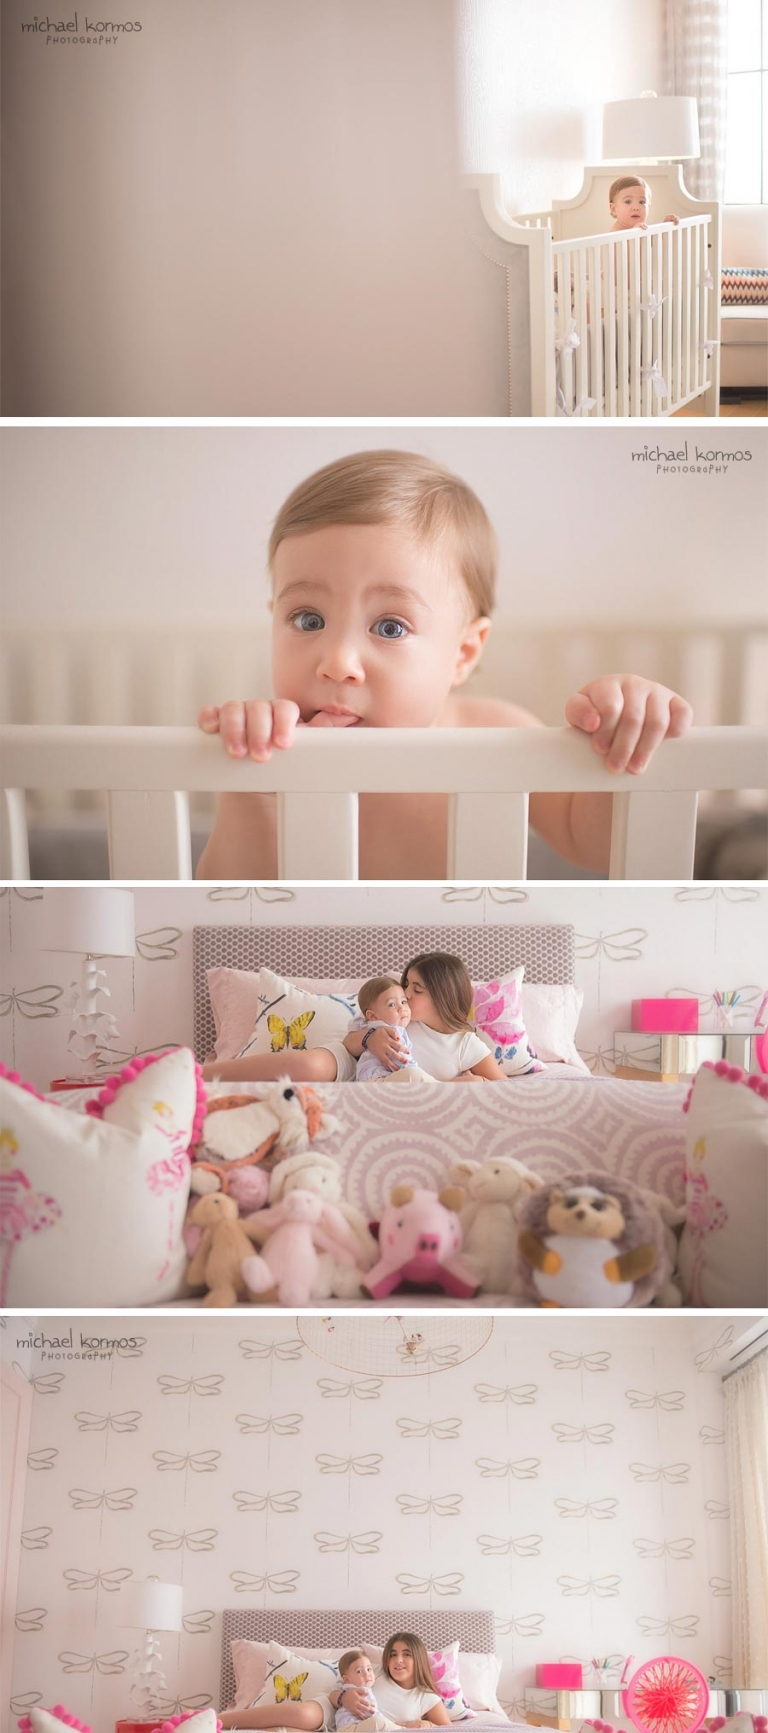 NYC Lifestyle Baby Photography captured in Manhattan home